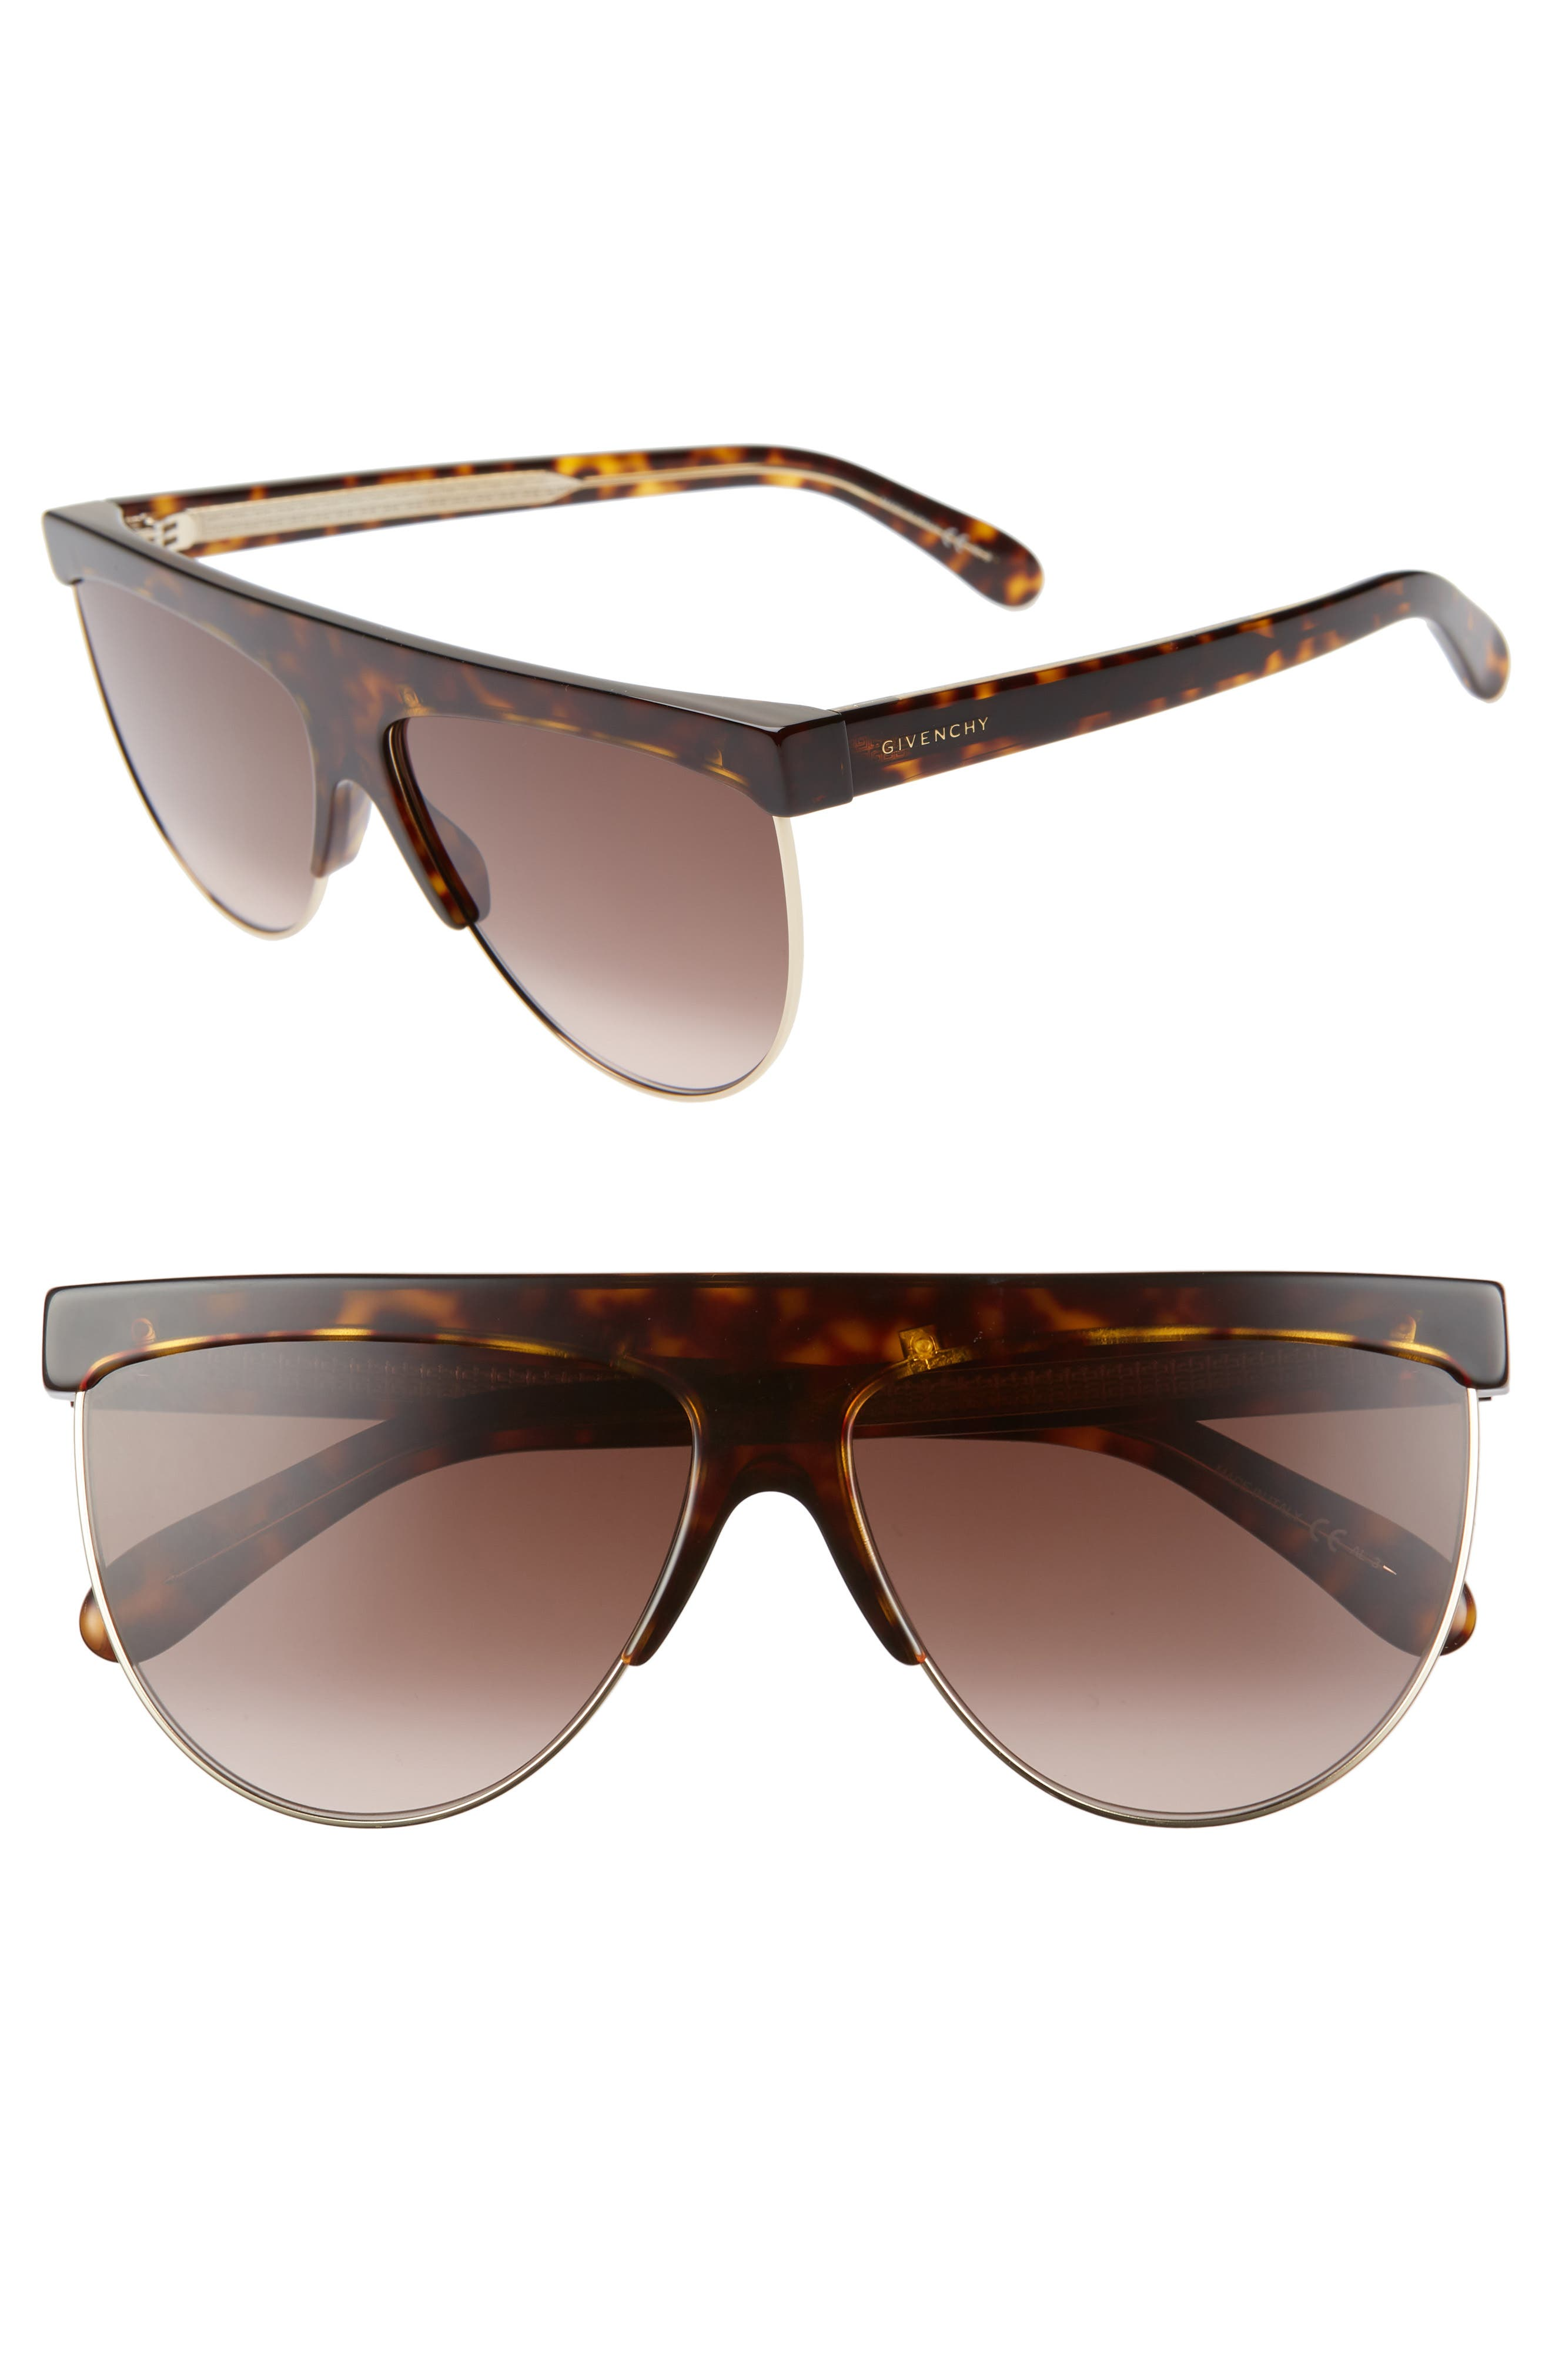 Givenchy 62Mm Oversize Flat Top Sunglasses - Dark Havana/ Gold